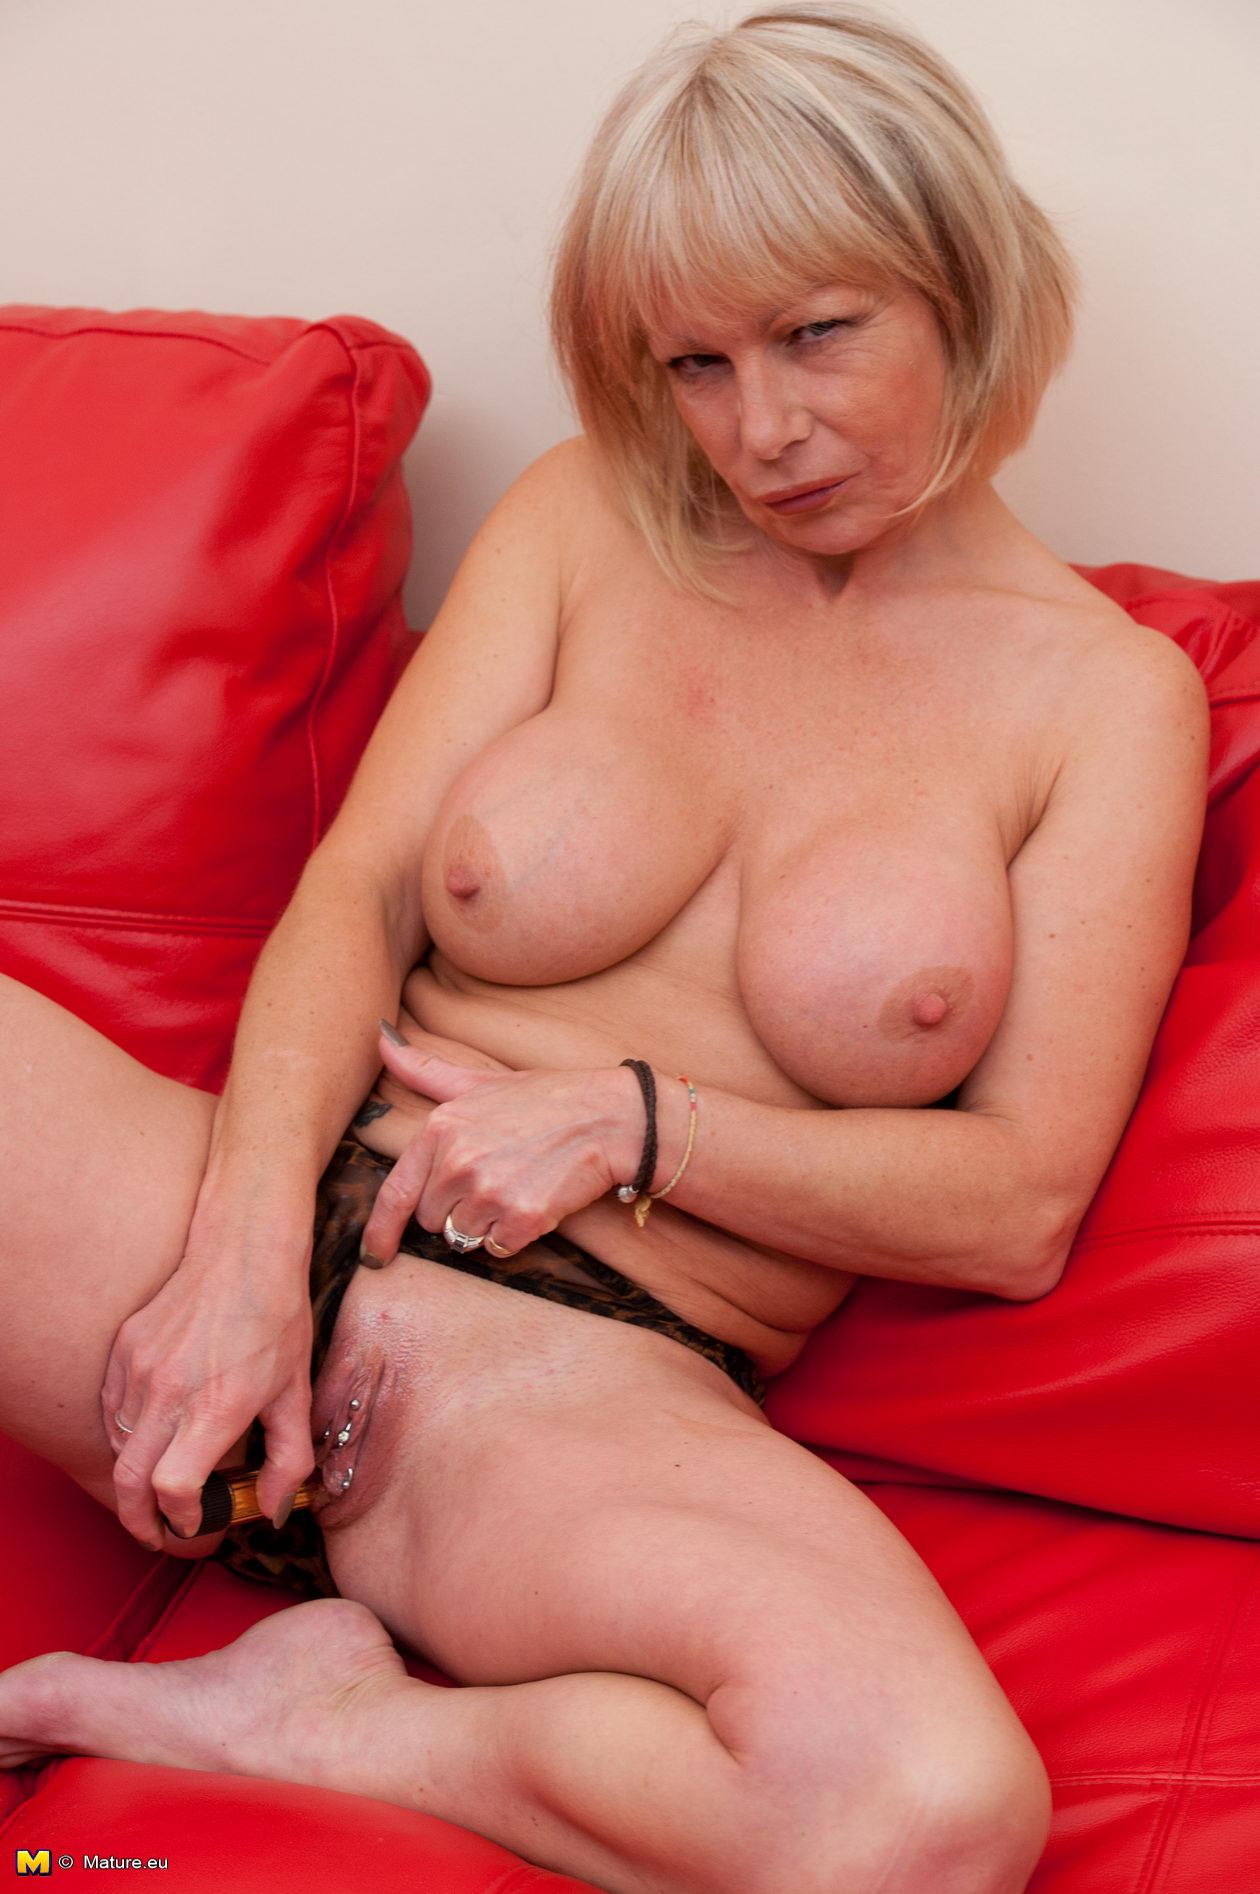 naughty anal pantyhose action if